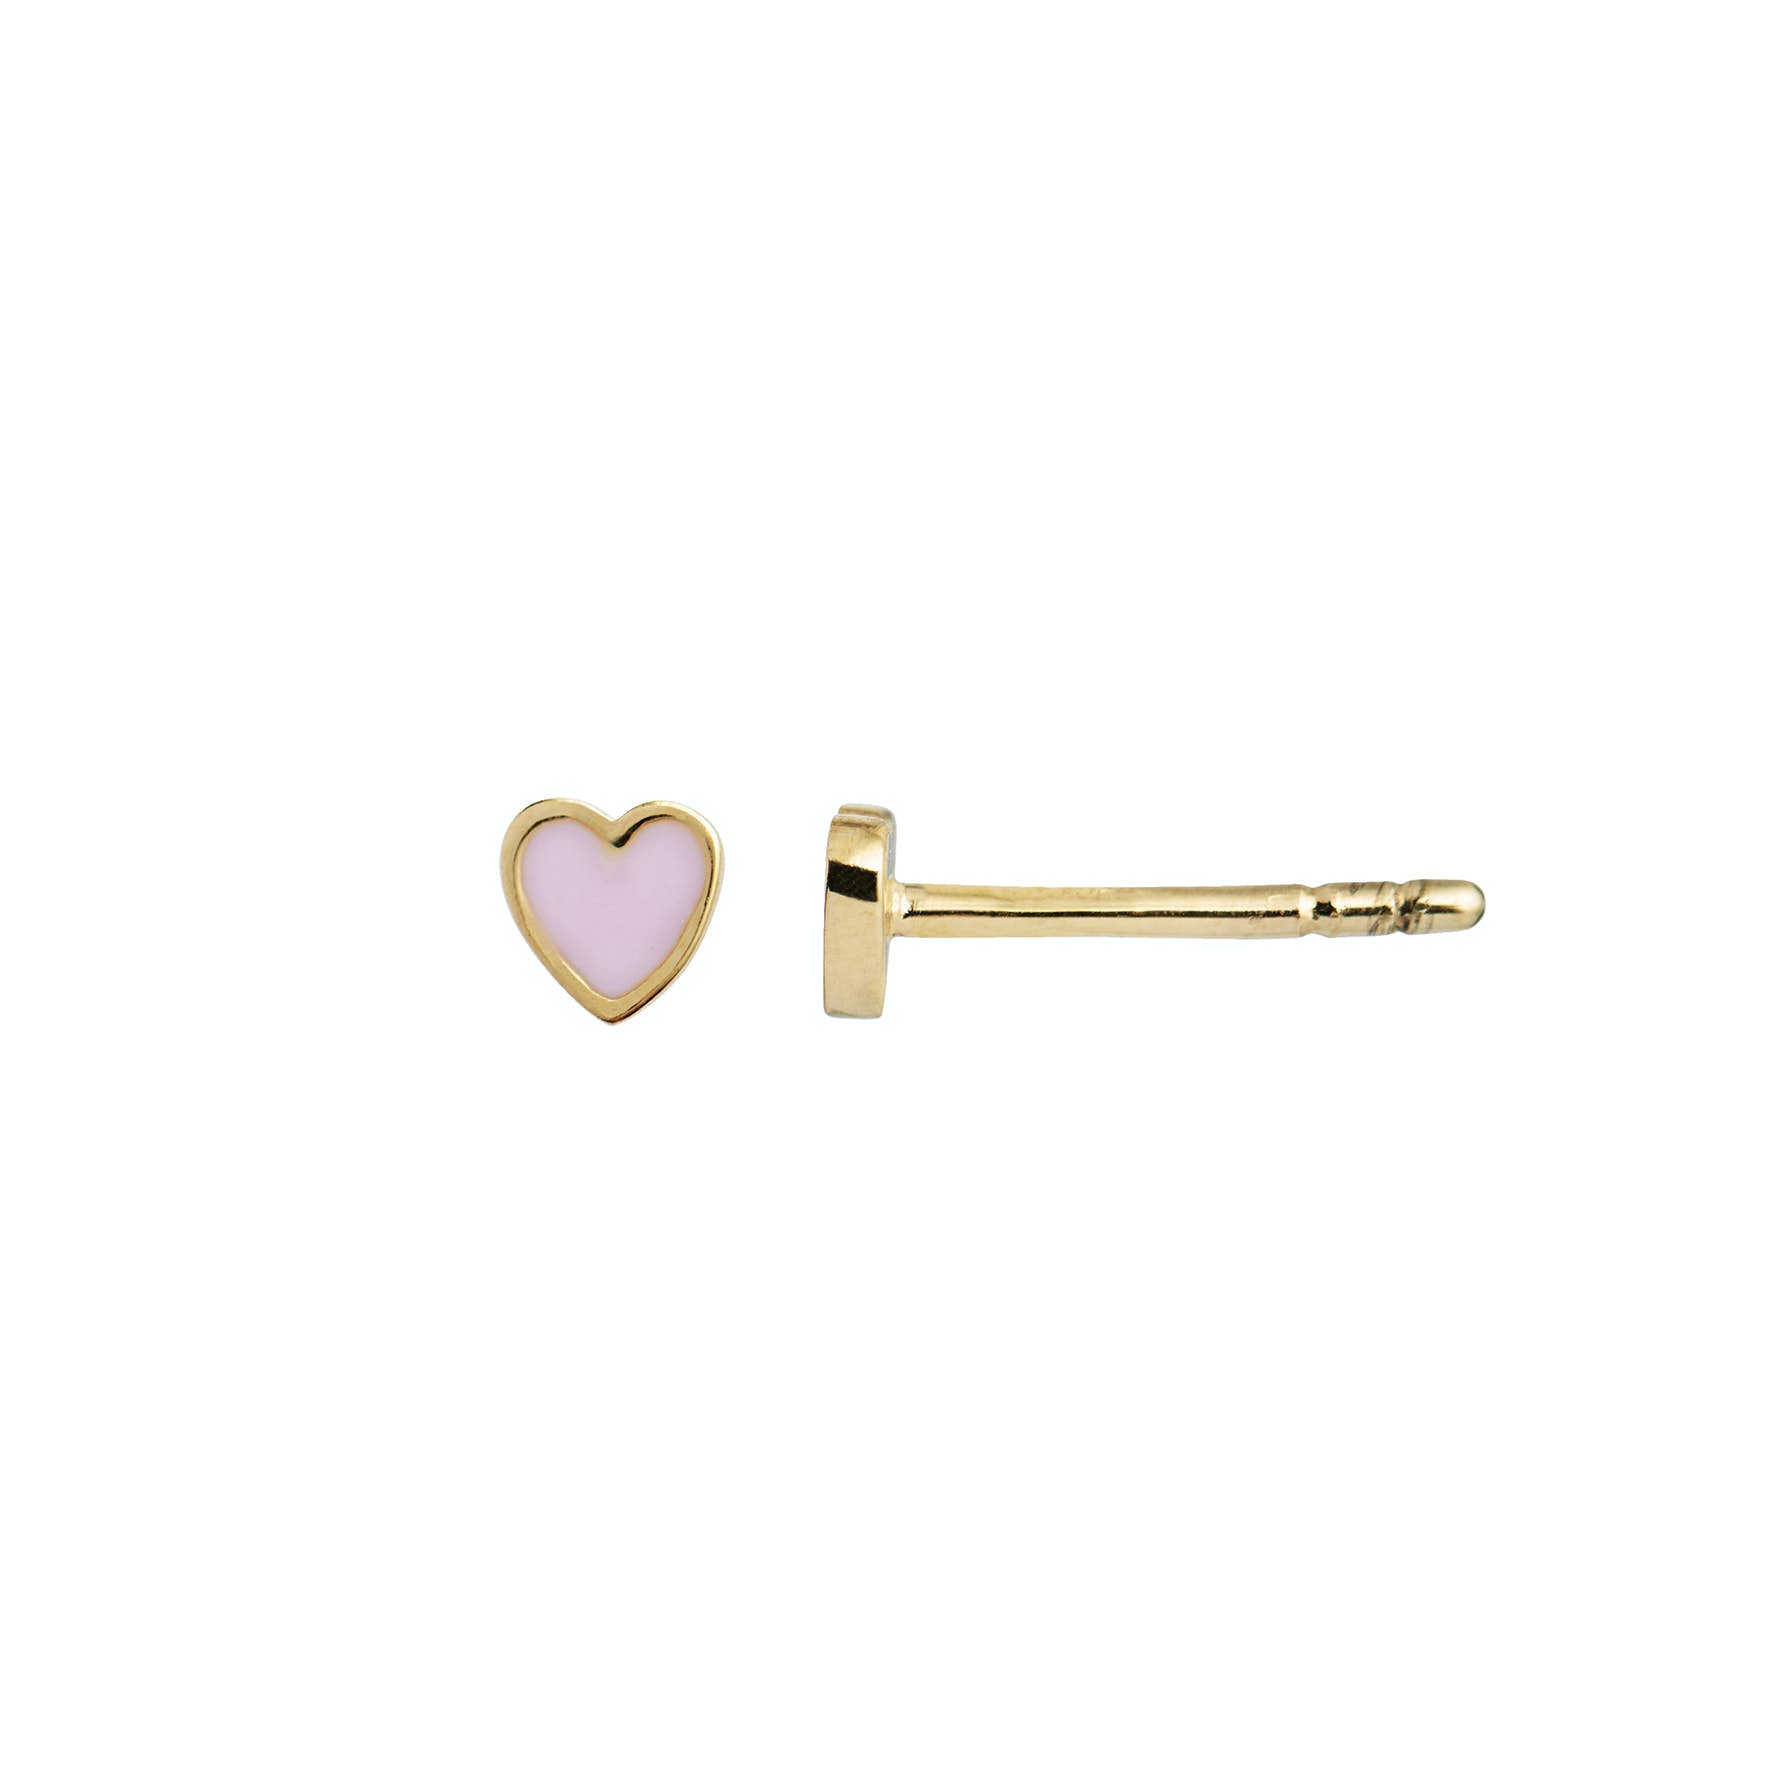 Petit Love Heart Earstick Light Pink from STINE A Jewelry in Goldplated-Silver Sterling 925